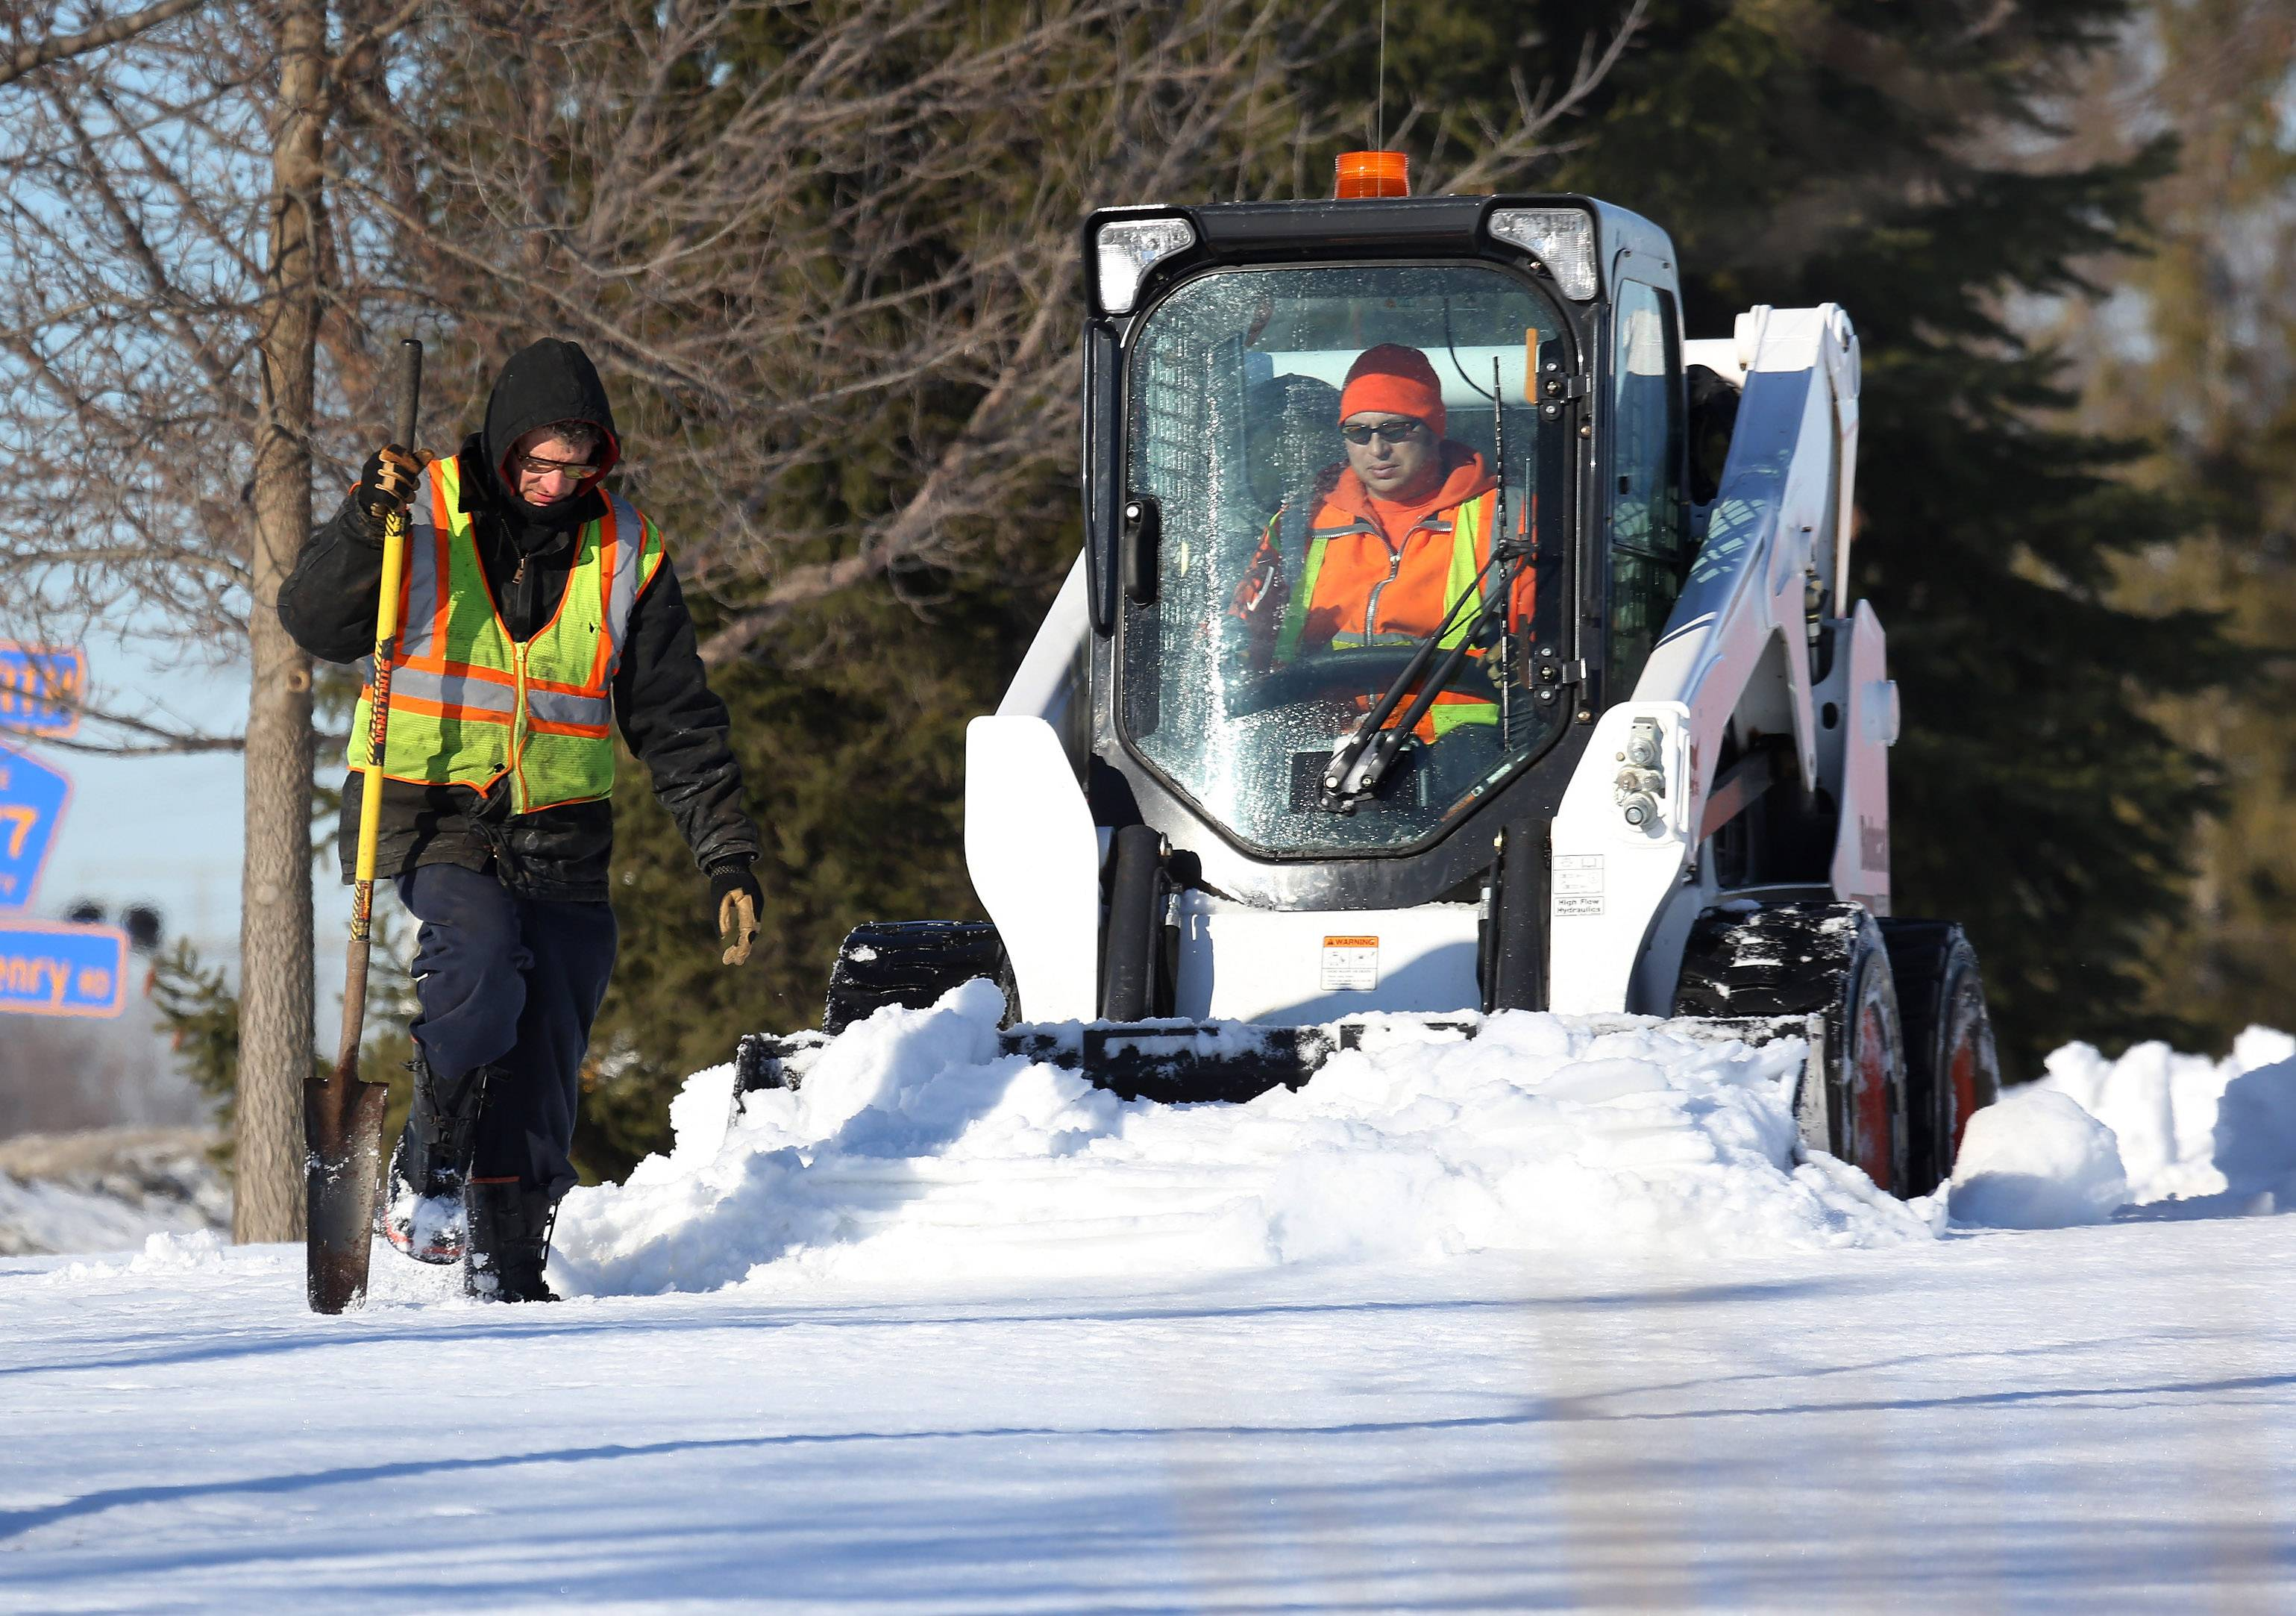 Hawthorn Woods public works employees Rick Stevens, left, and Rich Richter operate a front-end loader to clear trails at Community Park. The Winter Wonderland carnival is on Saturday.